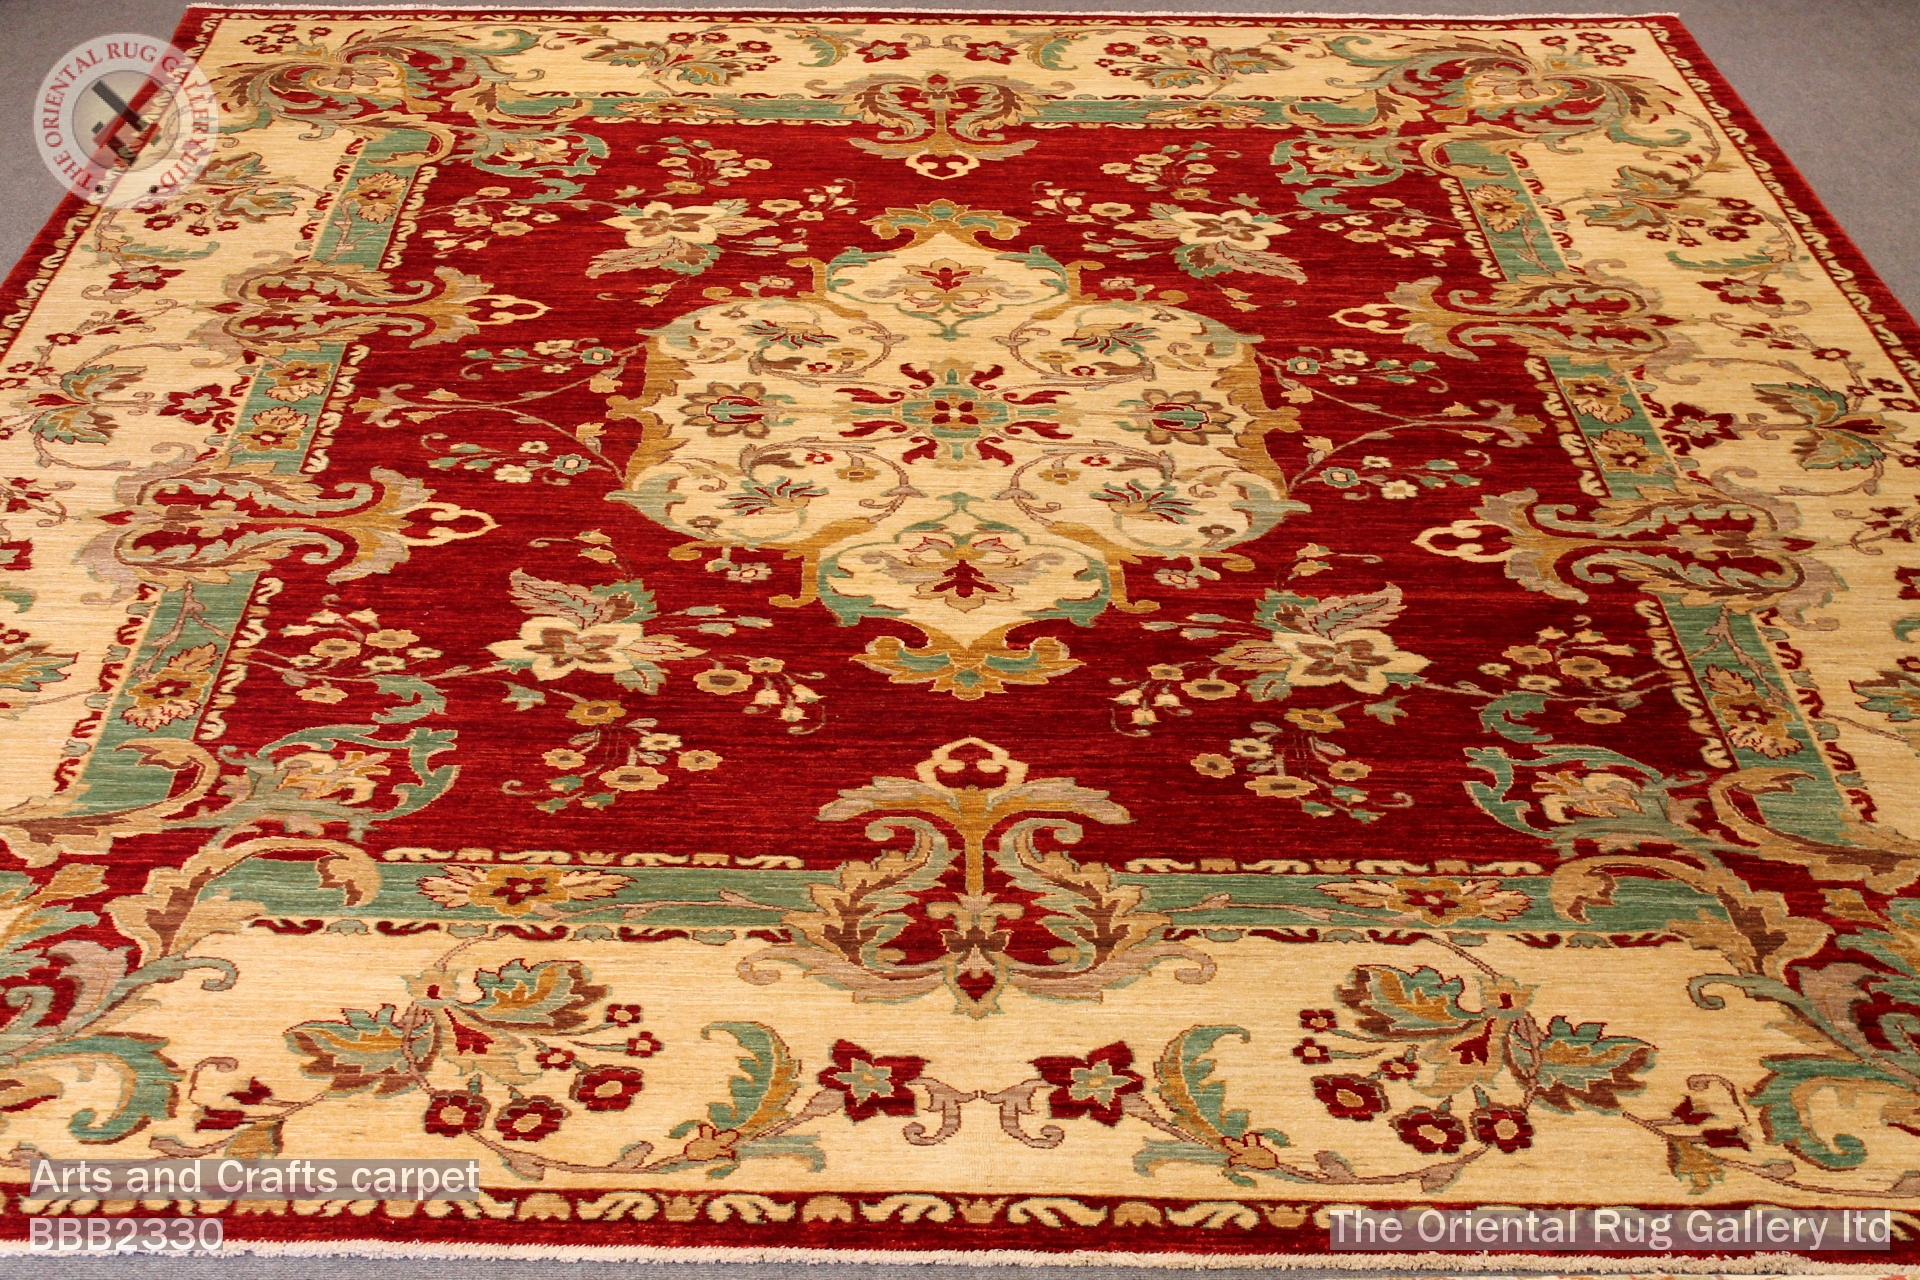 The oriental rug gallery ltd rugs carpets gallery for Arts and crafts carpet